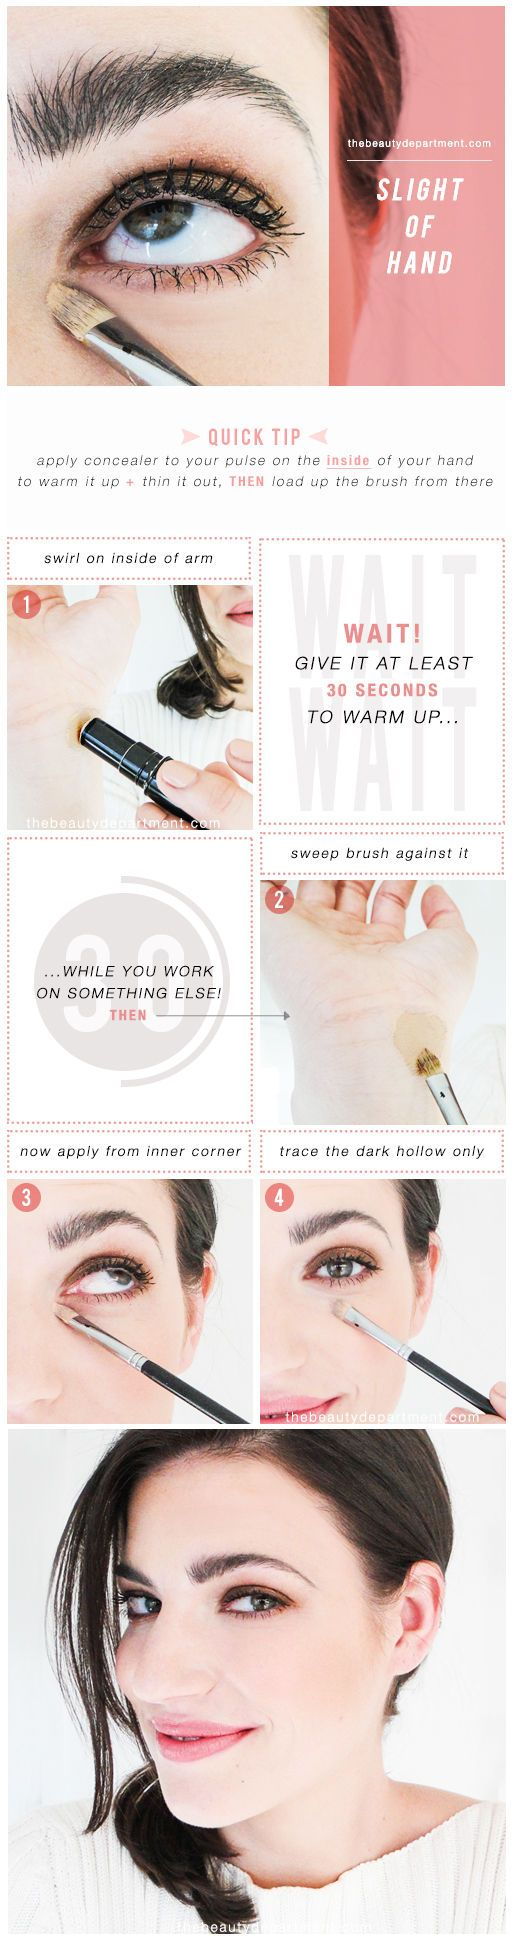 The Beauty Department: Your Daily Dose of Pretty. -   THE CONCEALER WARM UP